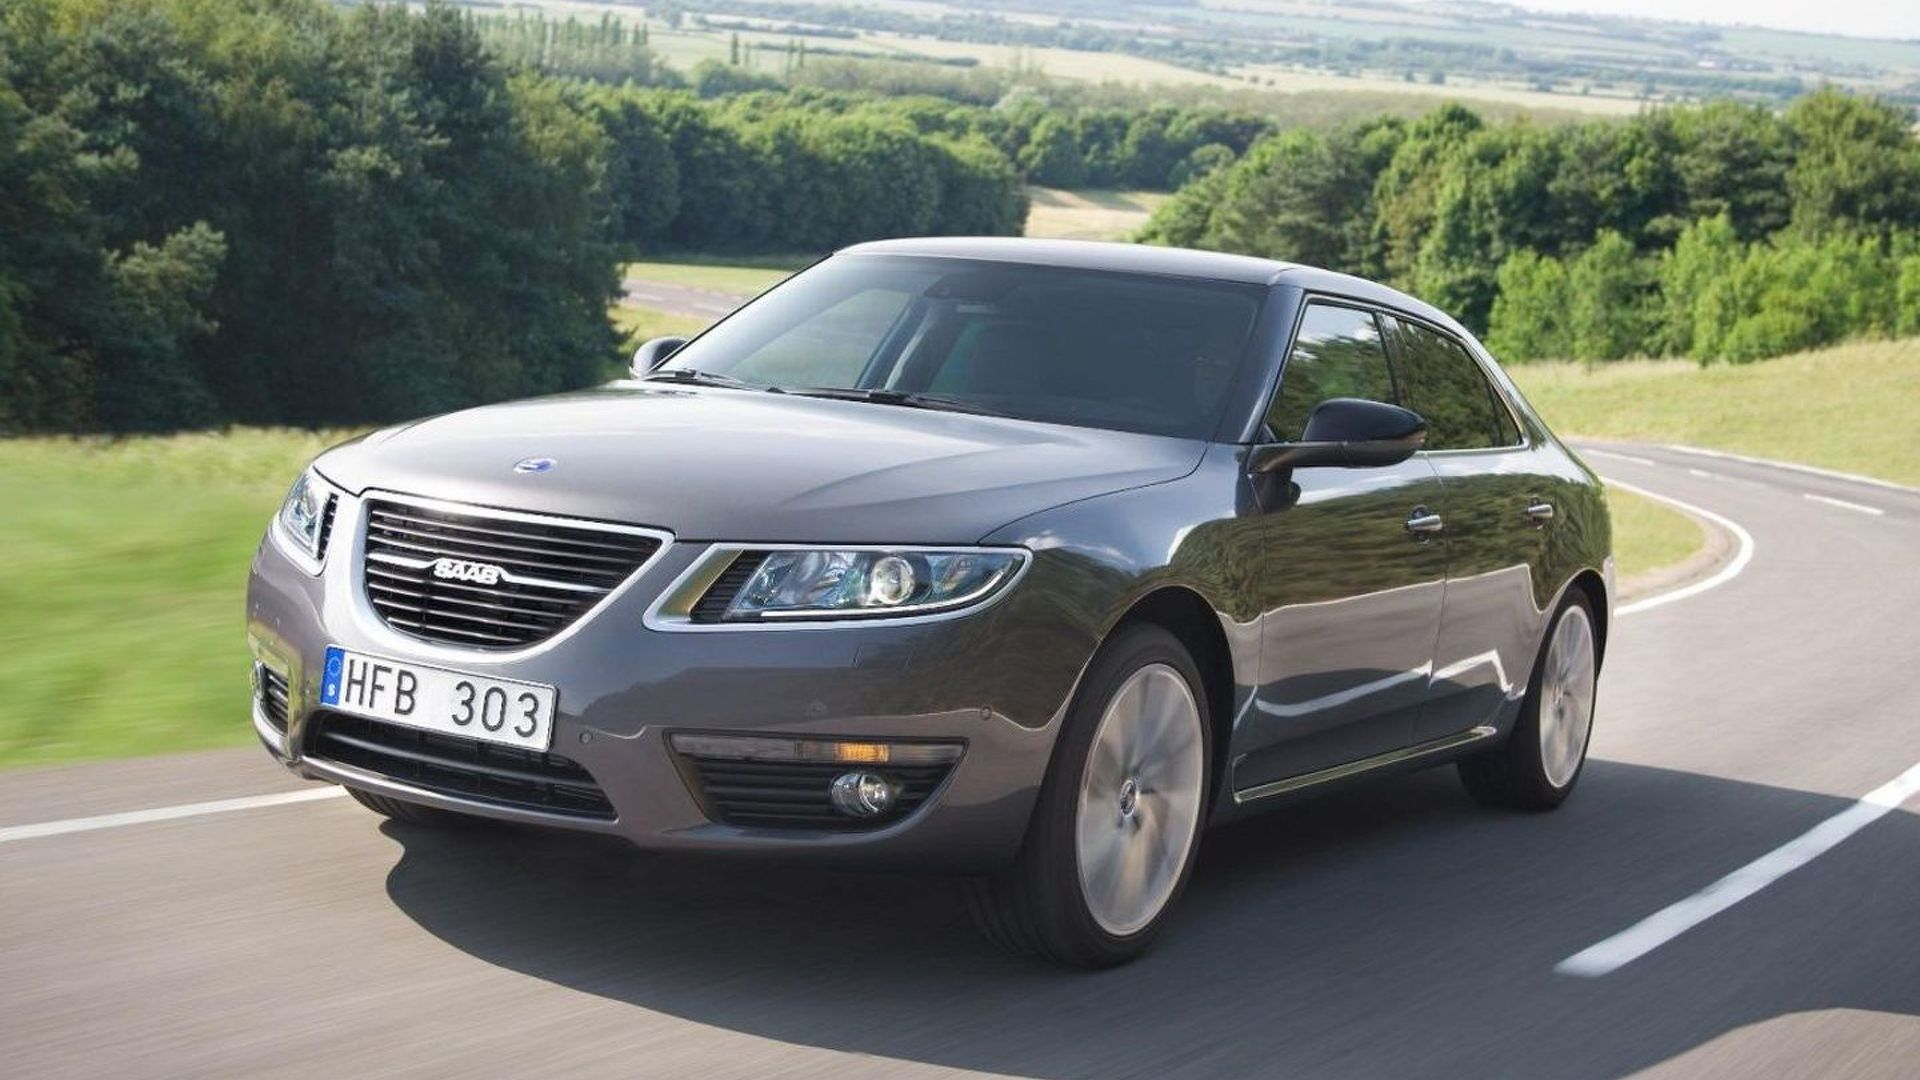 Saab to launch five new models by 2013